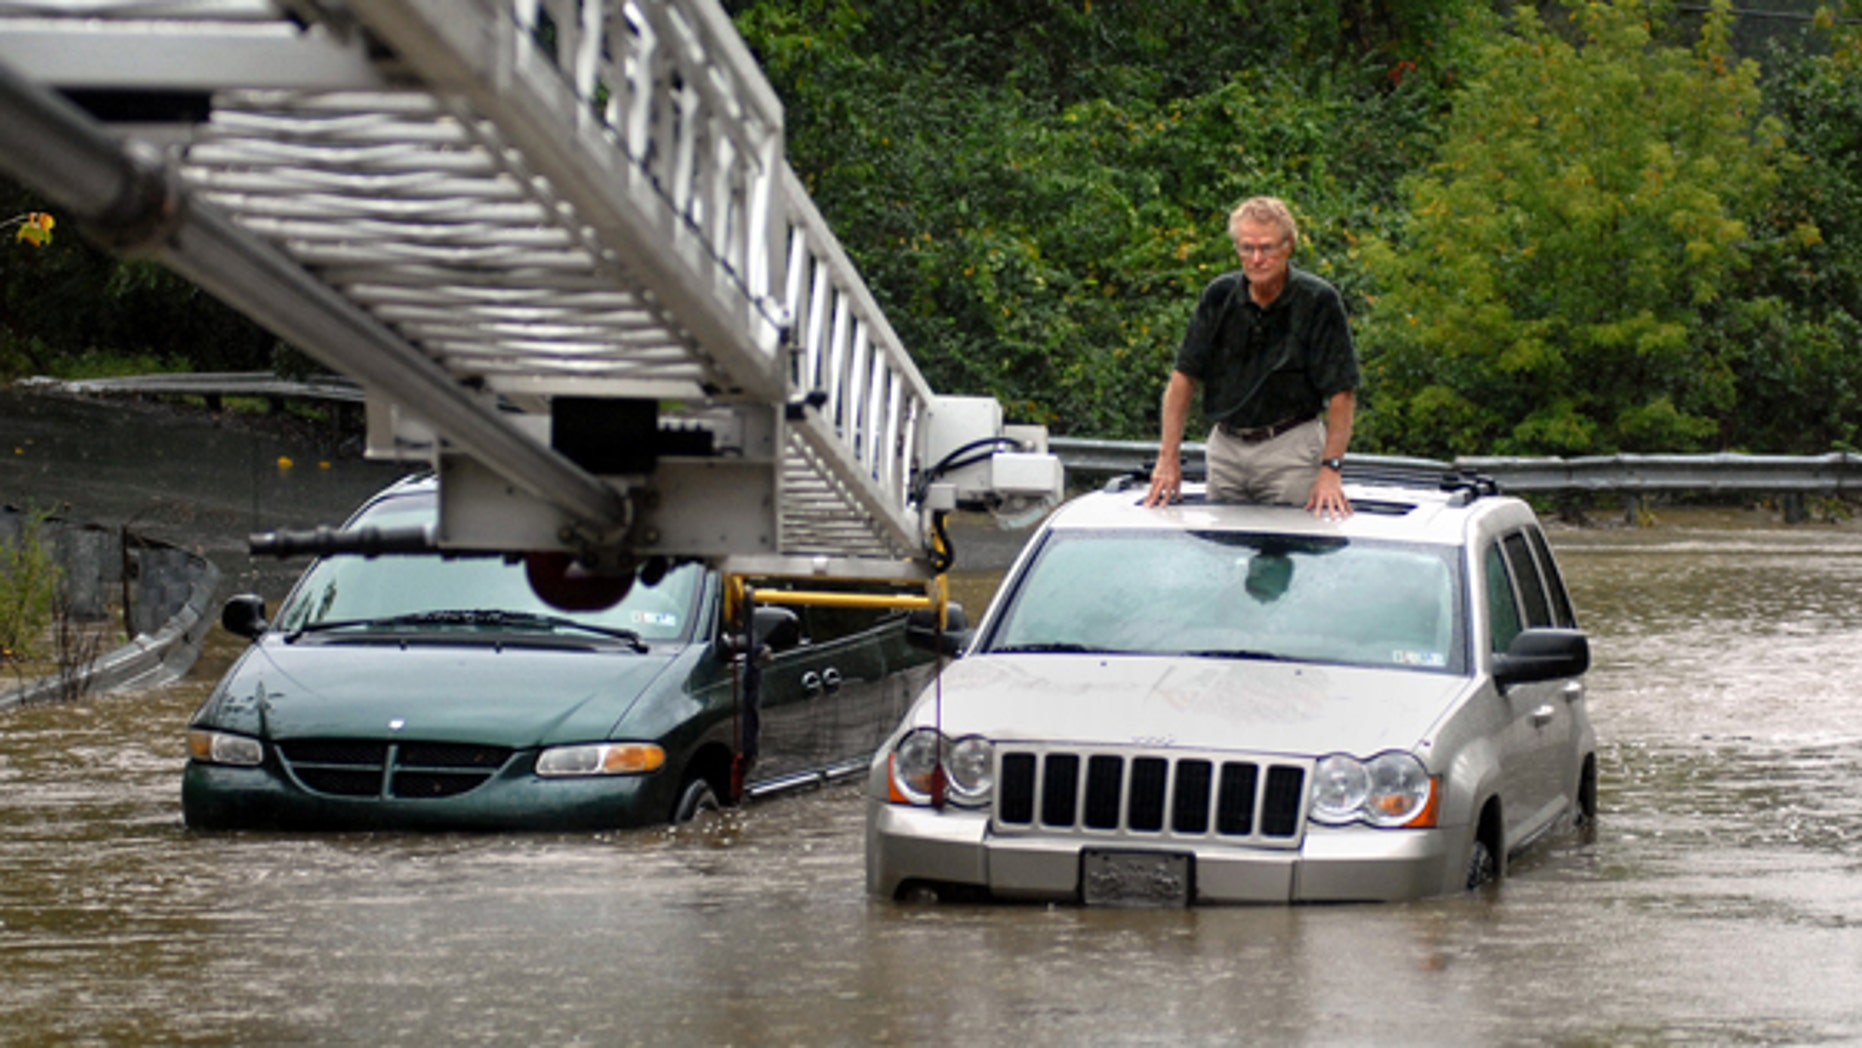 Sept. 30: A stranded motorist waits for the fire company ladder to be lowered to him in Lancaster, Pa. A series of storms moving through Pennsylvania brought flooding that closed some roadways and prompted many schools to dismiss classes early.